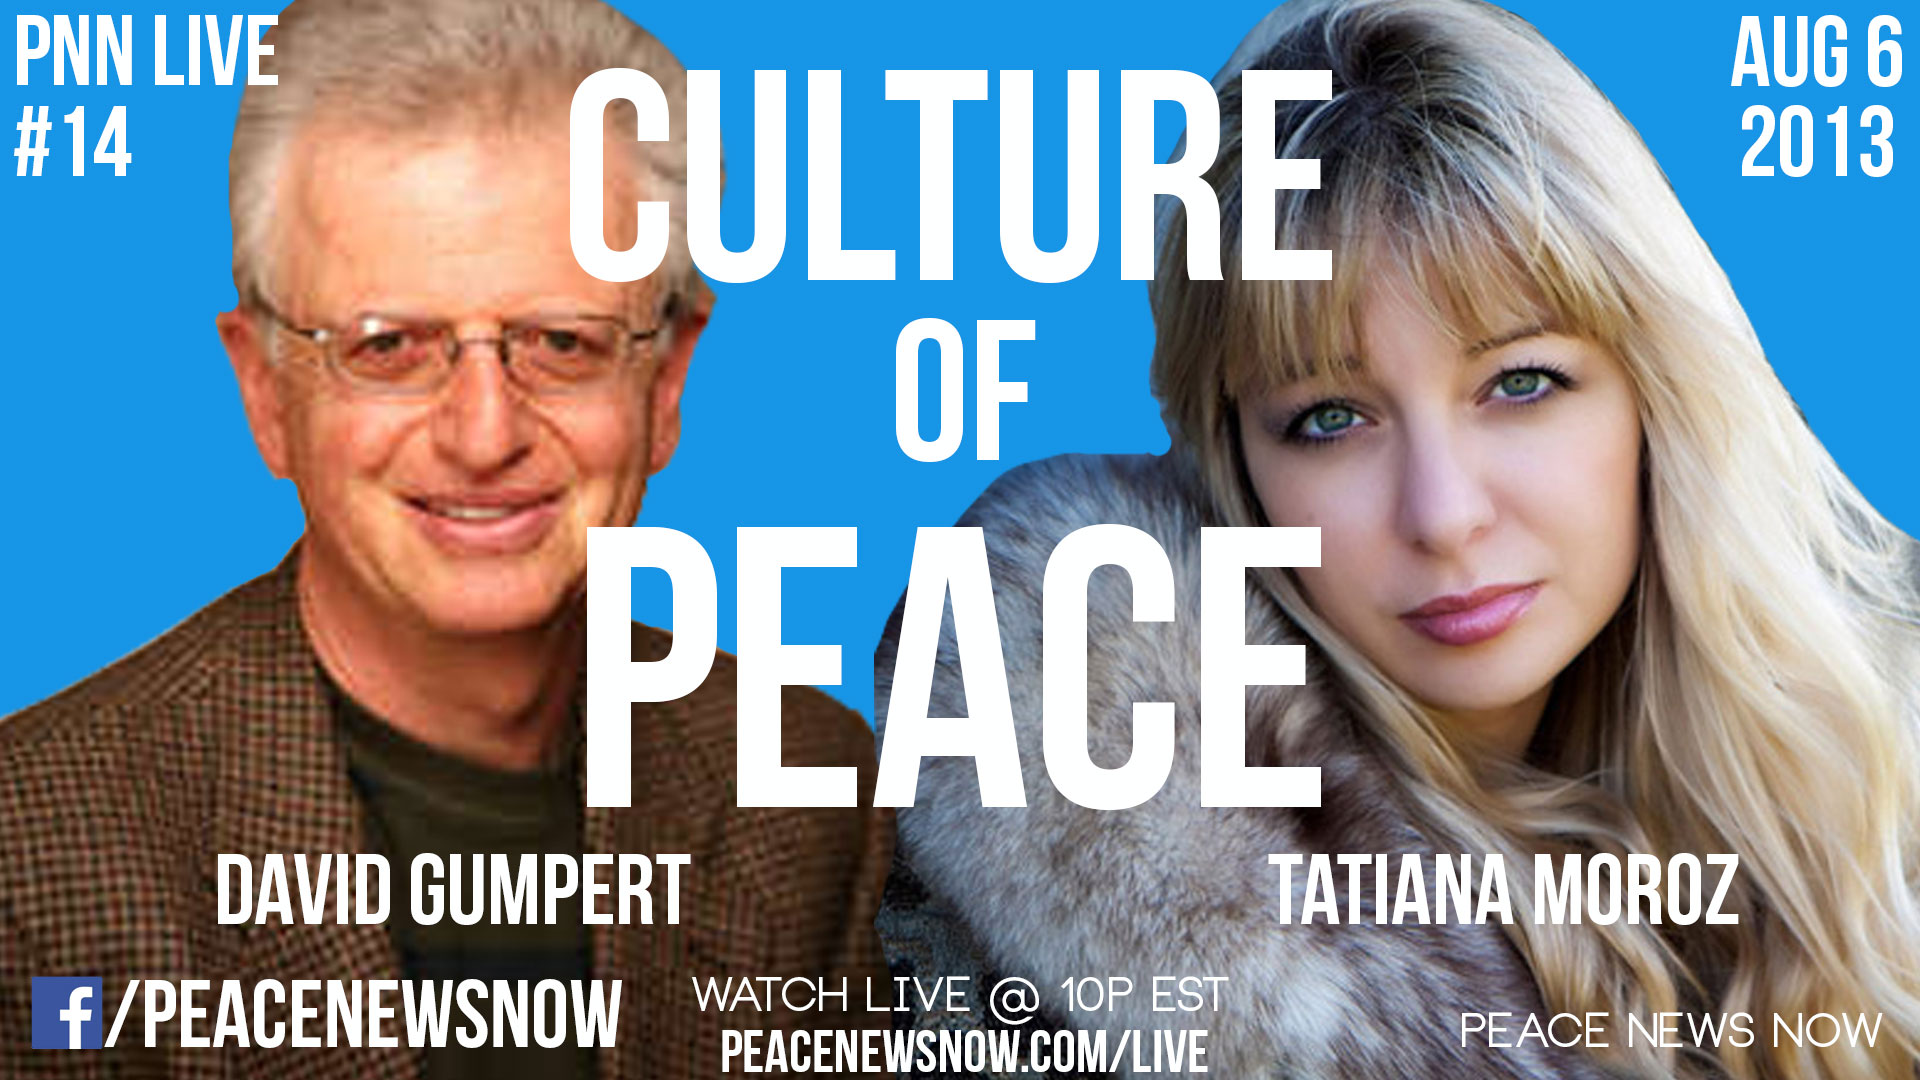 PNN Live #14 – Peace in Food & Arts